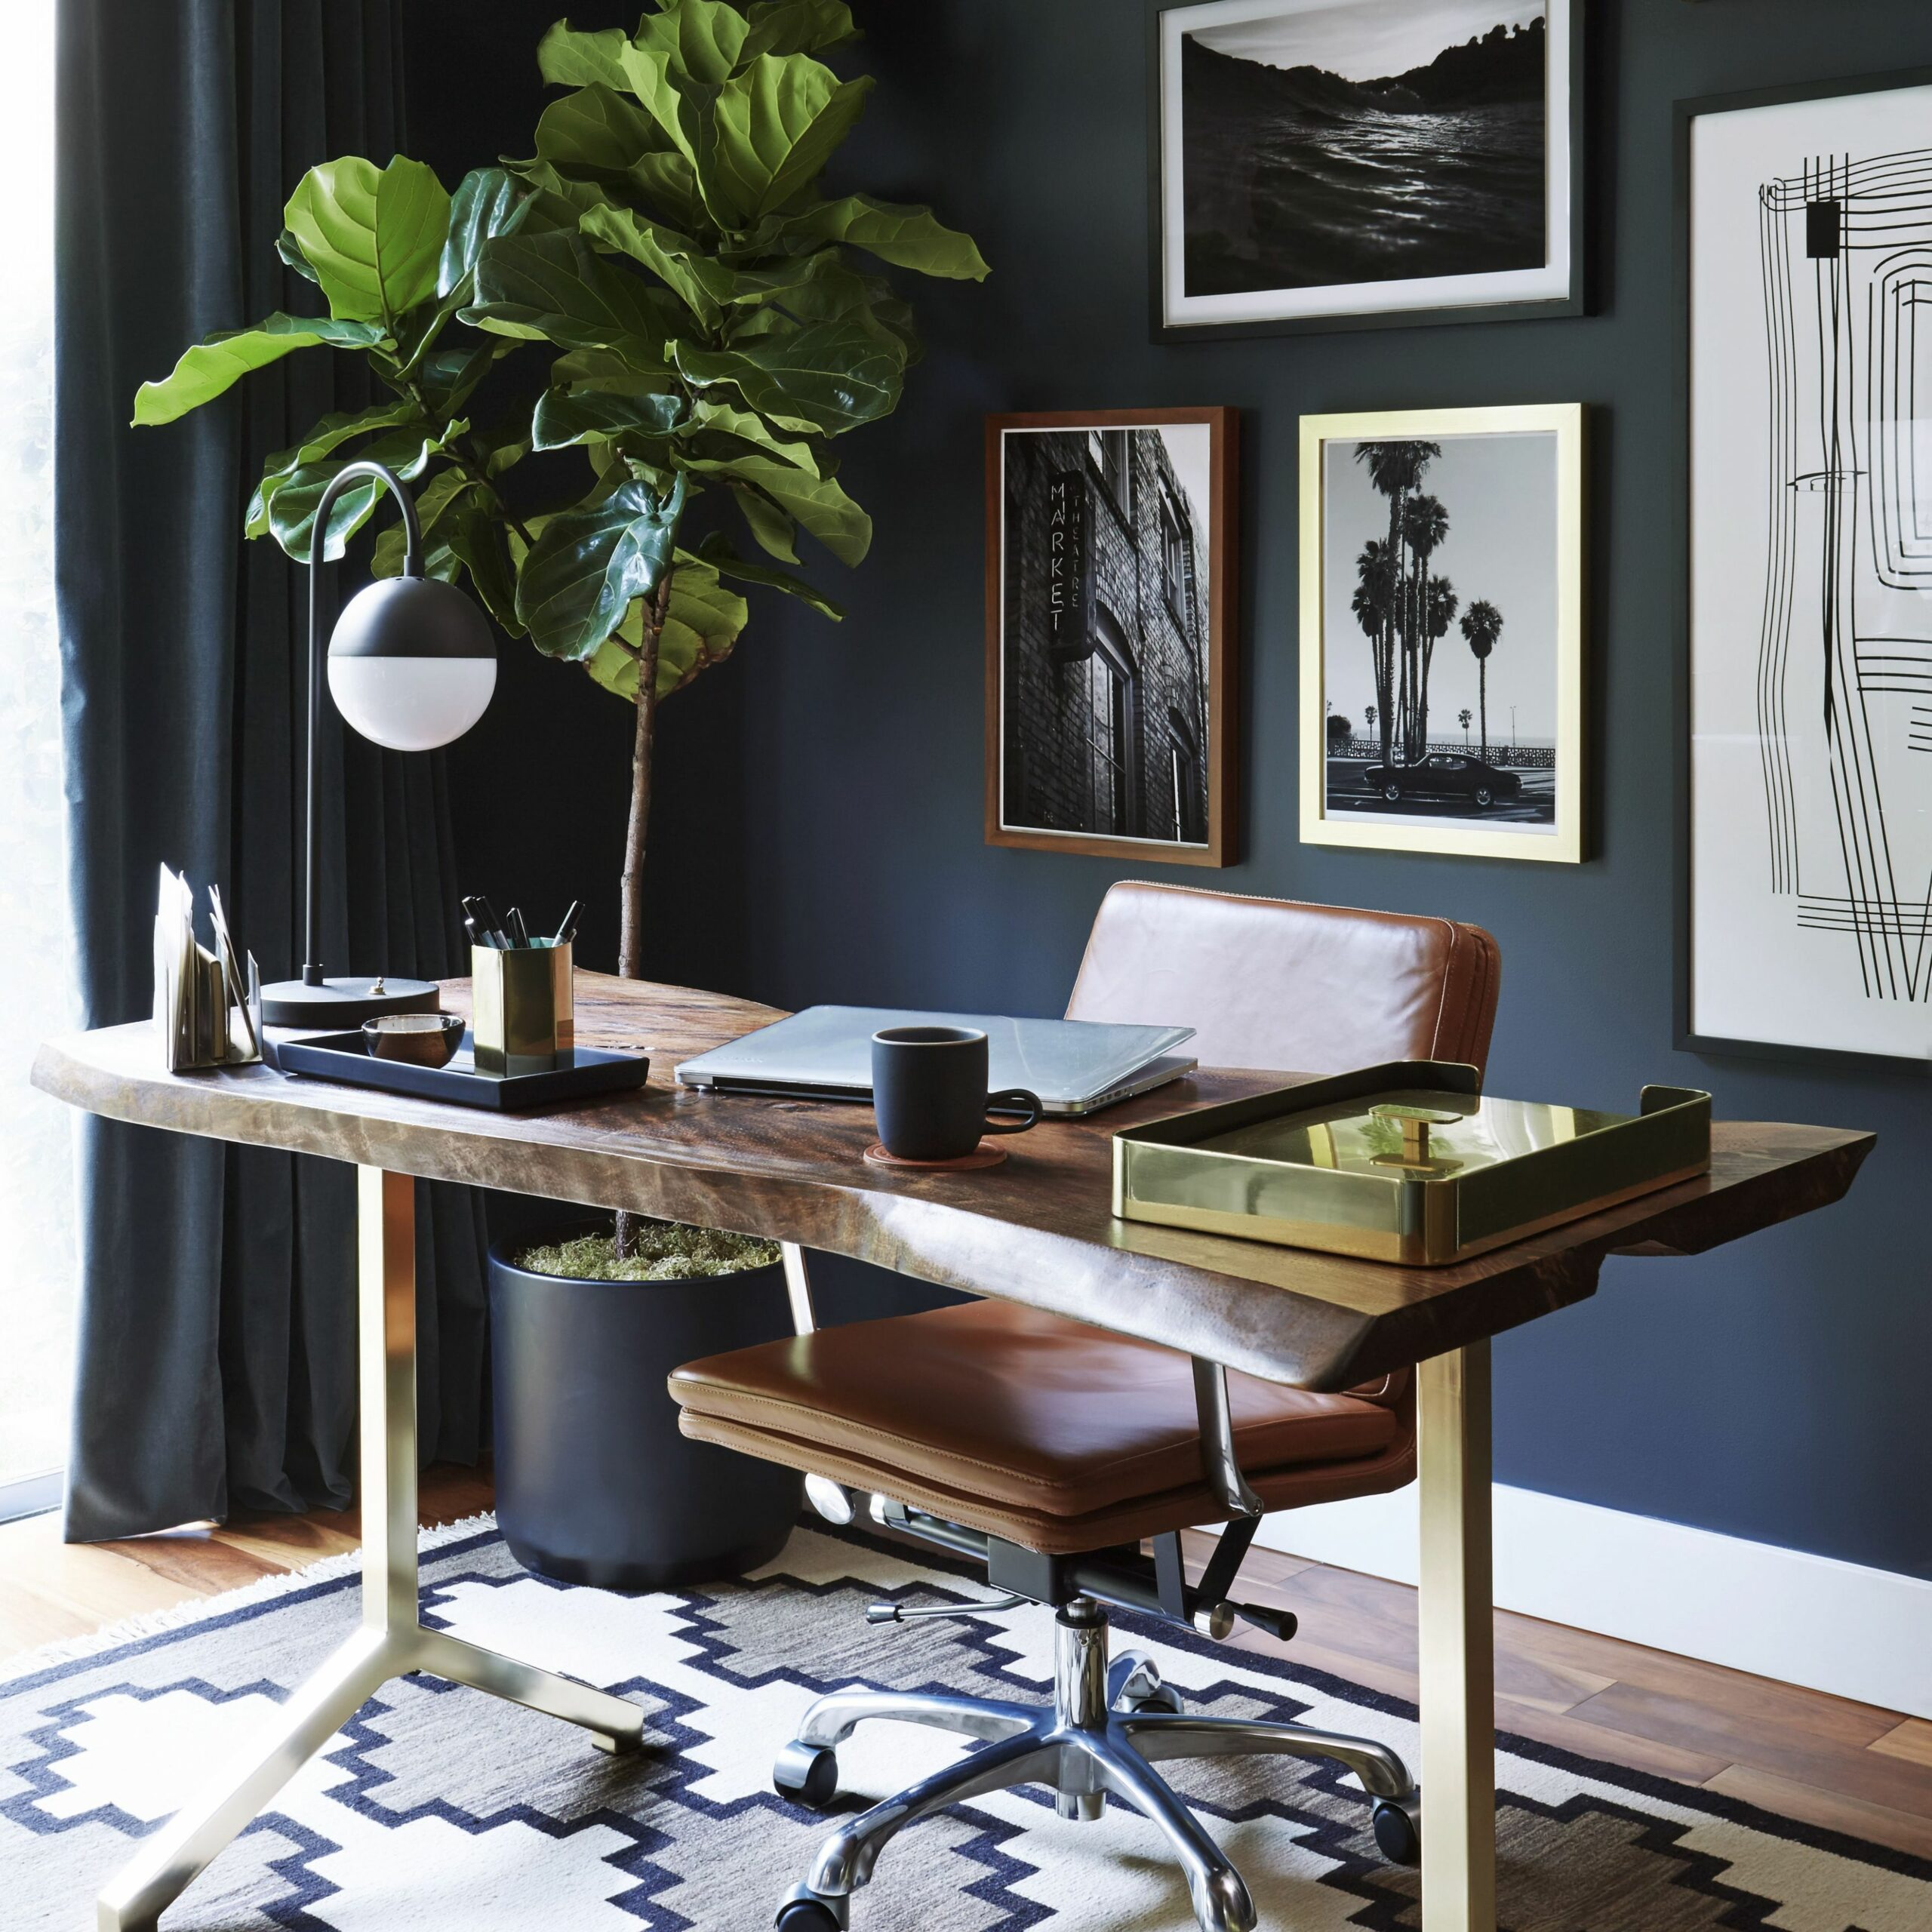 12 Feng Shui Home Office Design Ideas - home office location ideas